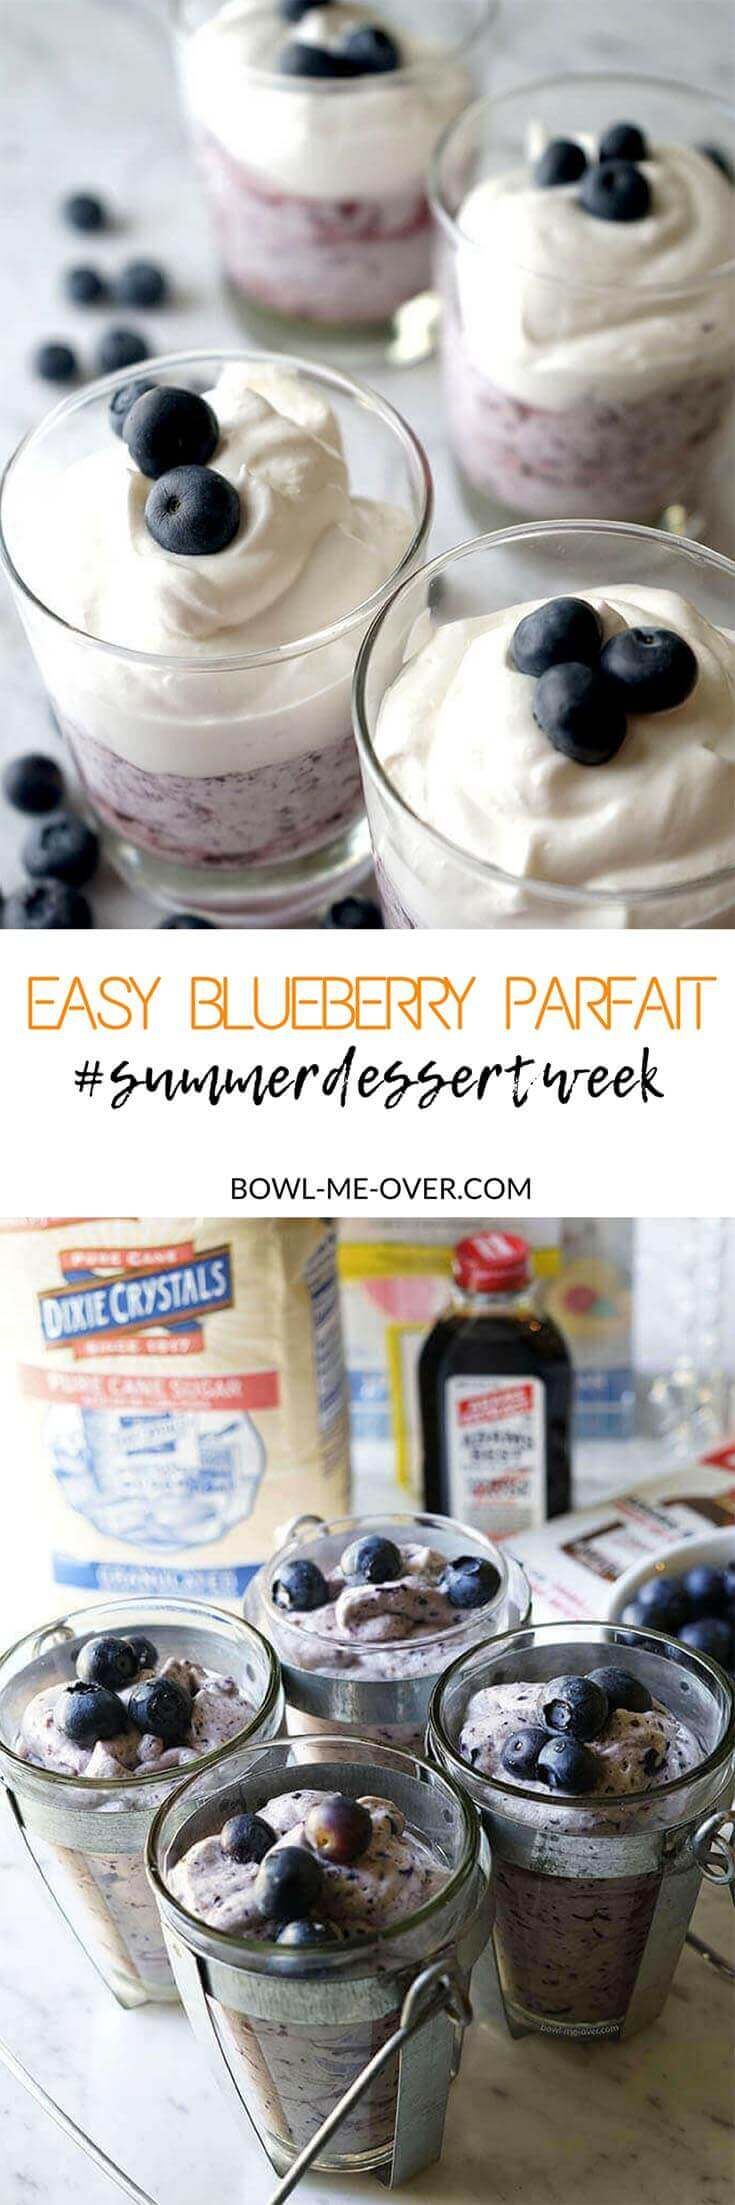 This Blueberry Parfait takes less than 10 minutes to make!